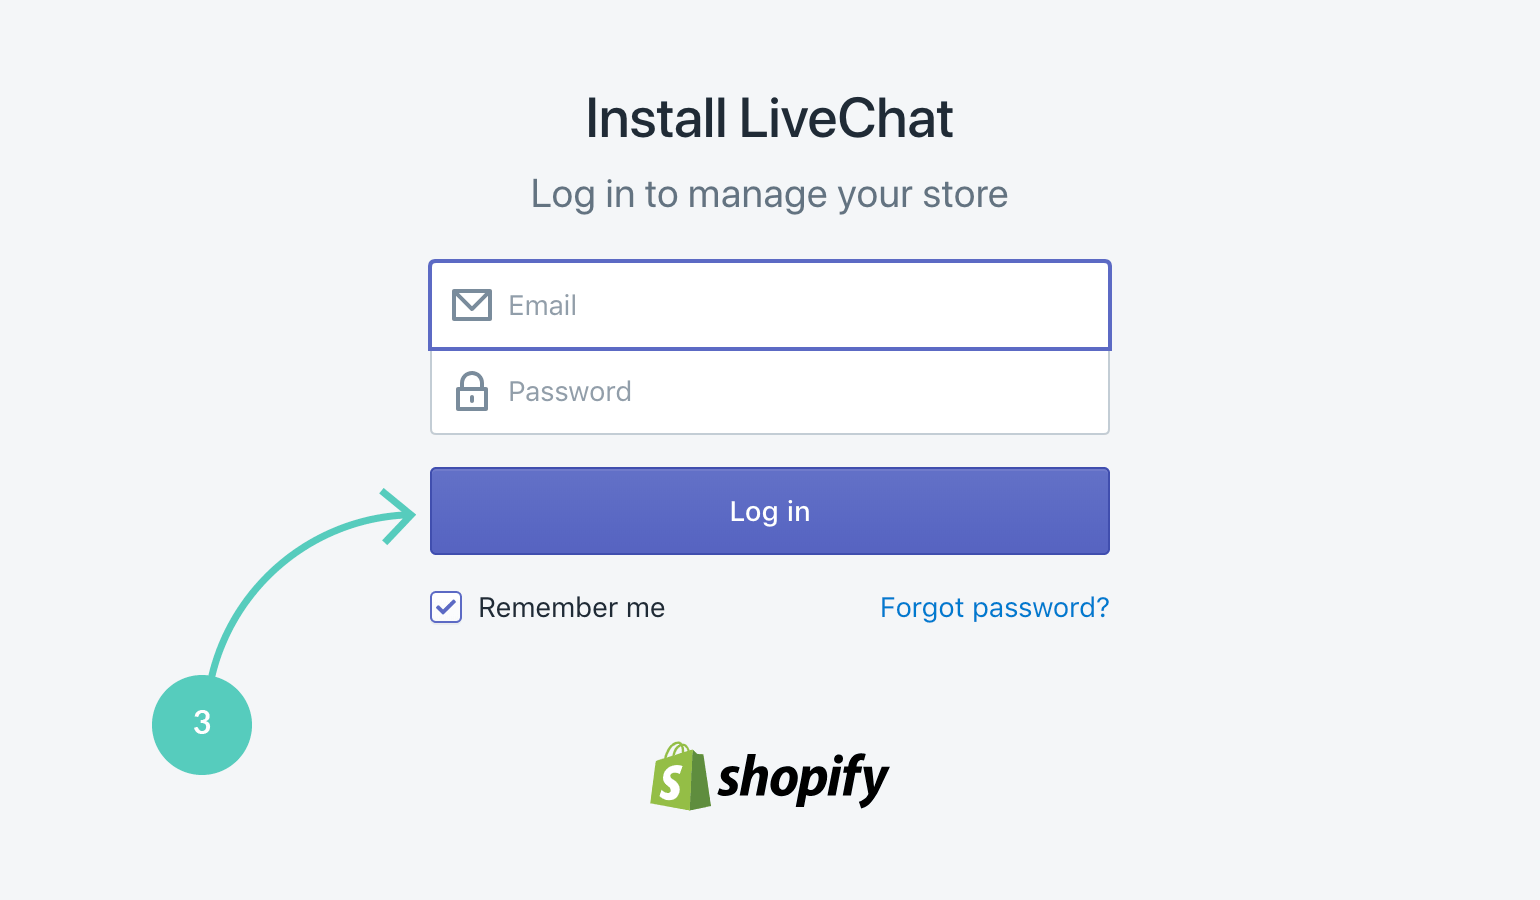 Shopify with LiveChat Log in to your Shopify account